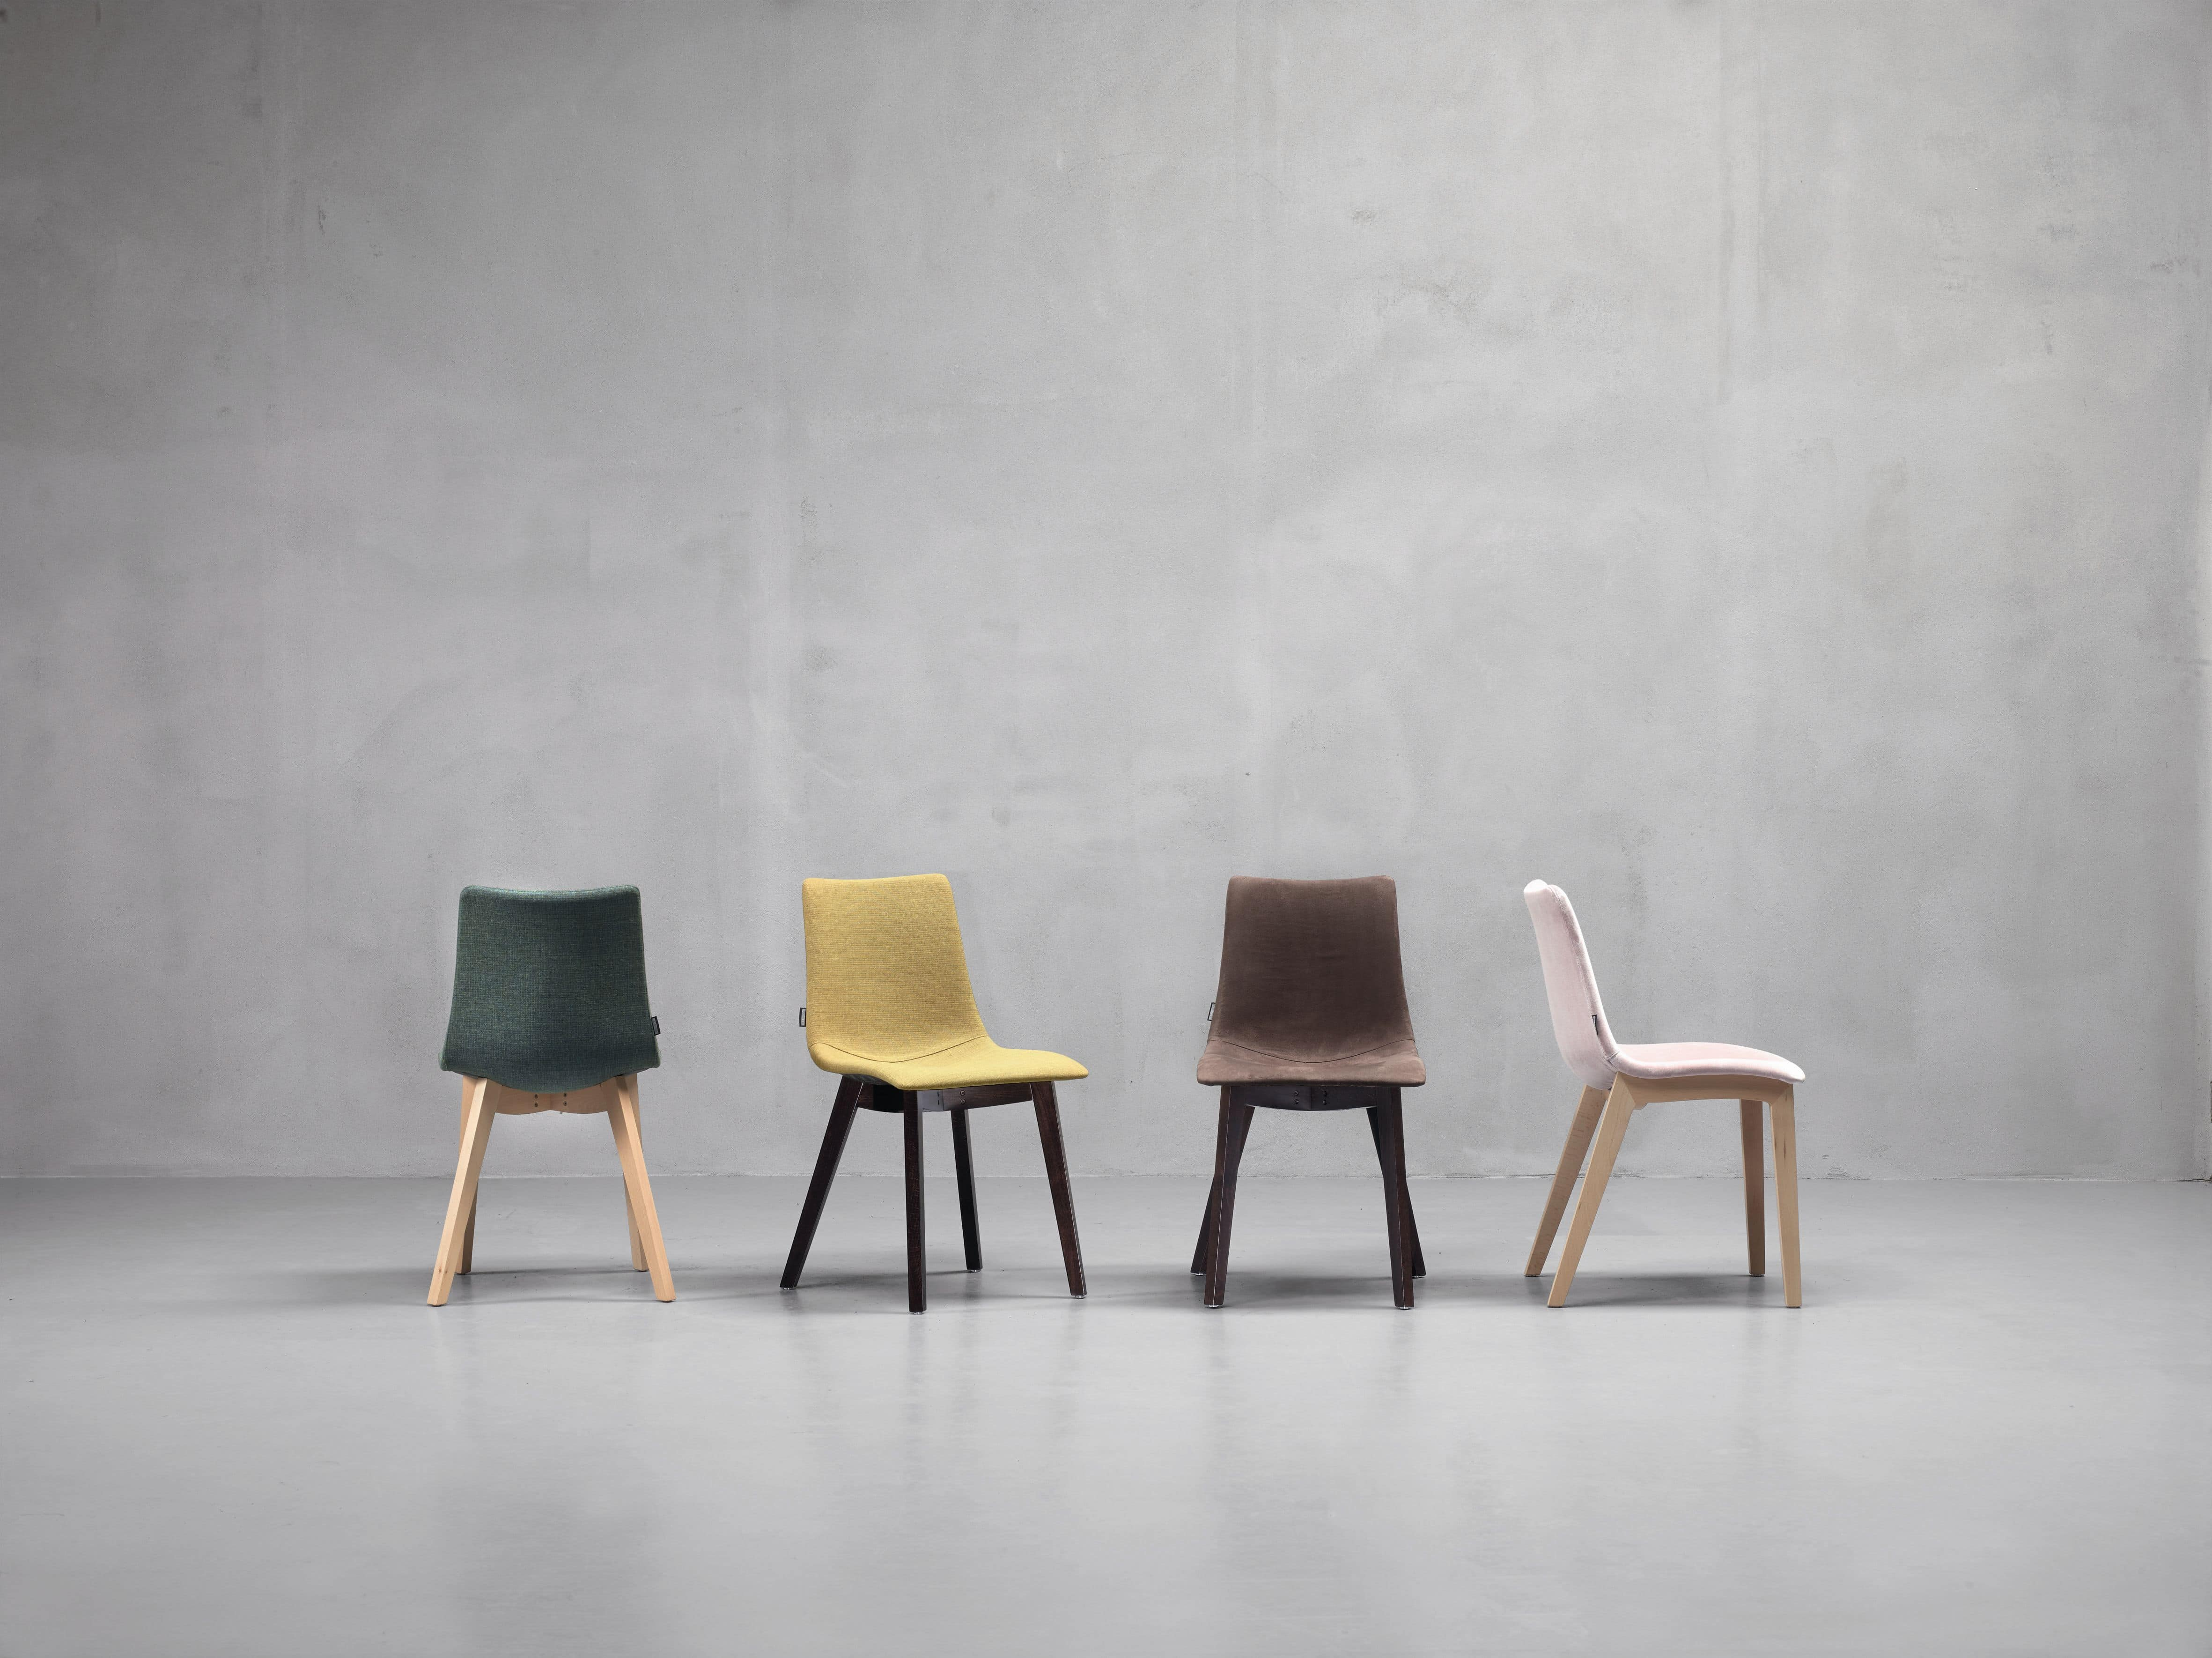 Natural Zebra Pop, Chair with padded seat, legs in wood